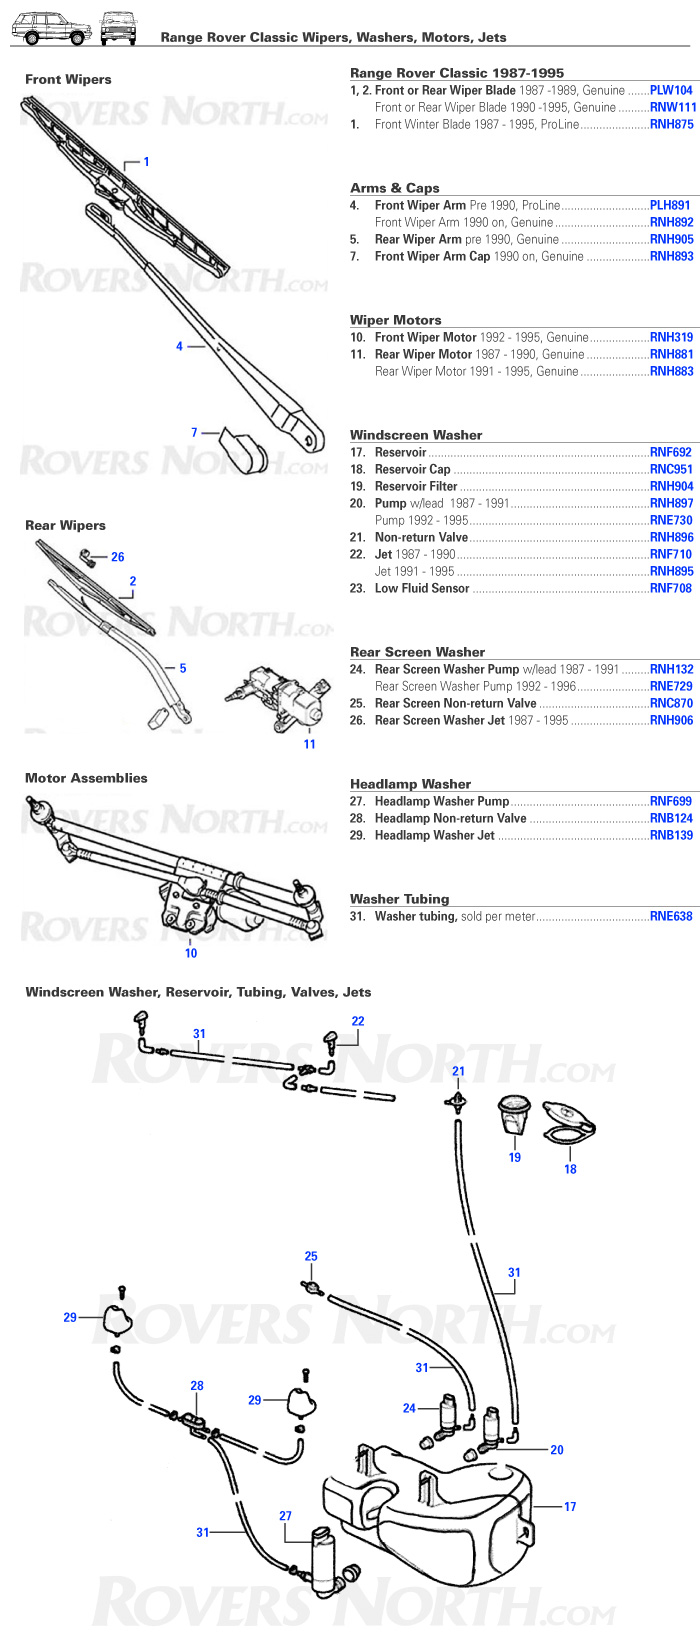 Windscreen / Windshield Wipers and Washers for Range Rover